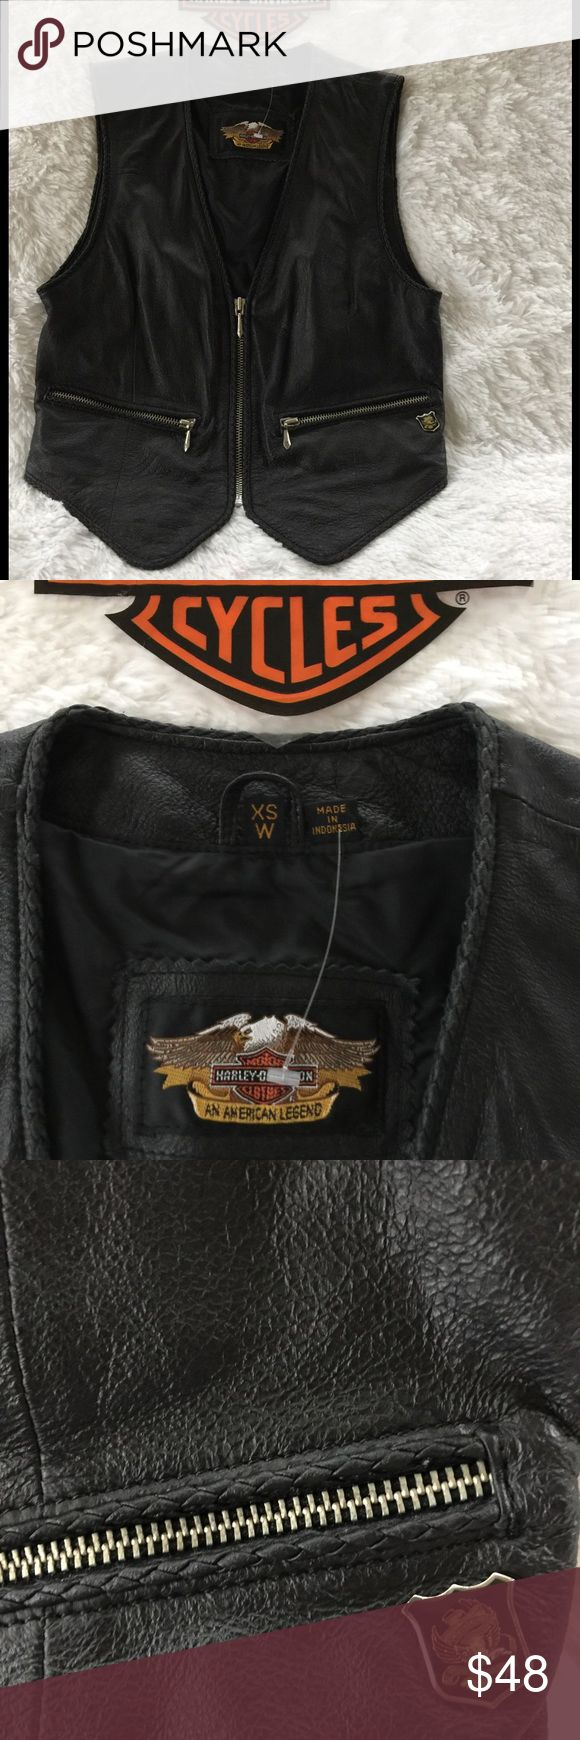 NWOT Black Leather Harley Davidson Vest Very nice detail with braided leather trim, back detail is very nice, last picture vest shown with sheer Harley shirt sold in a separate listing.  No pet/smoke closet Harley-Davidson Jackets & Coats Vests